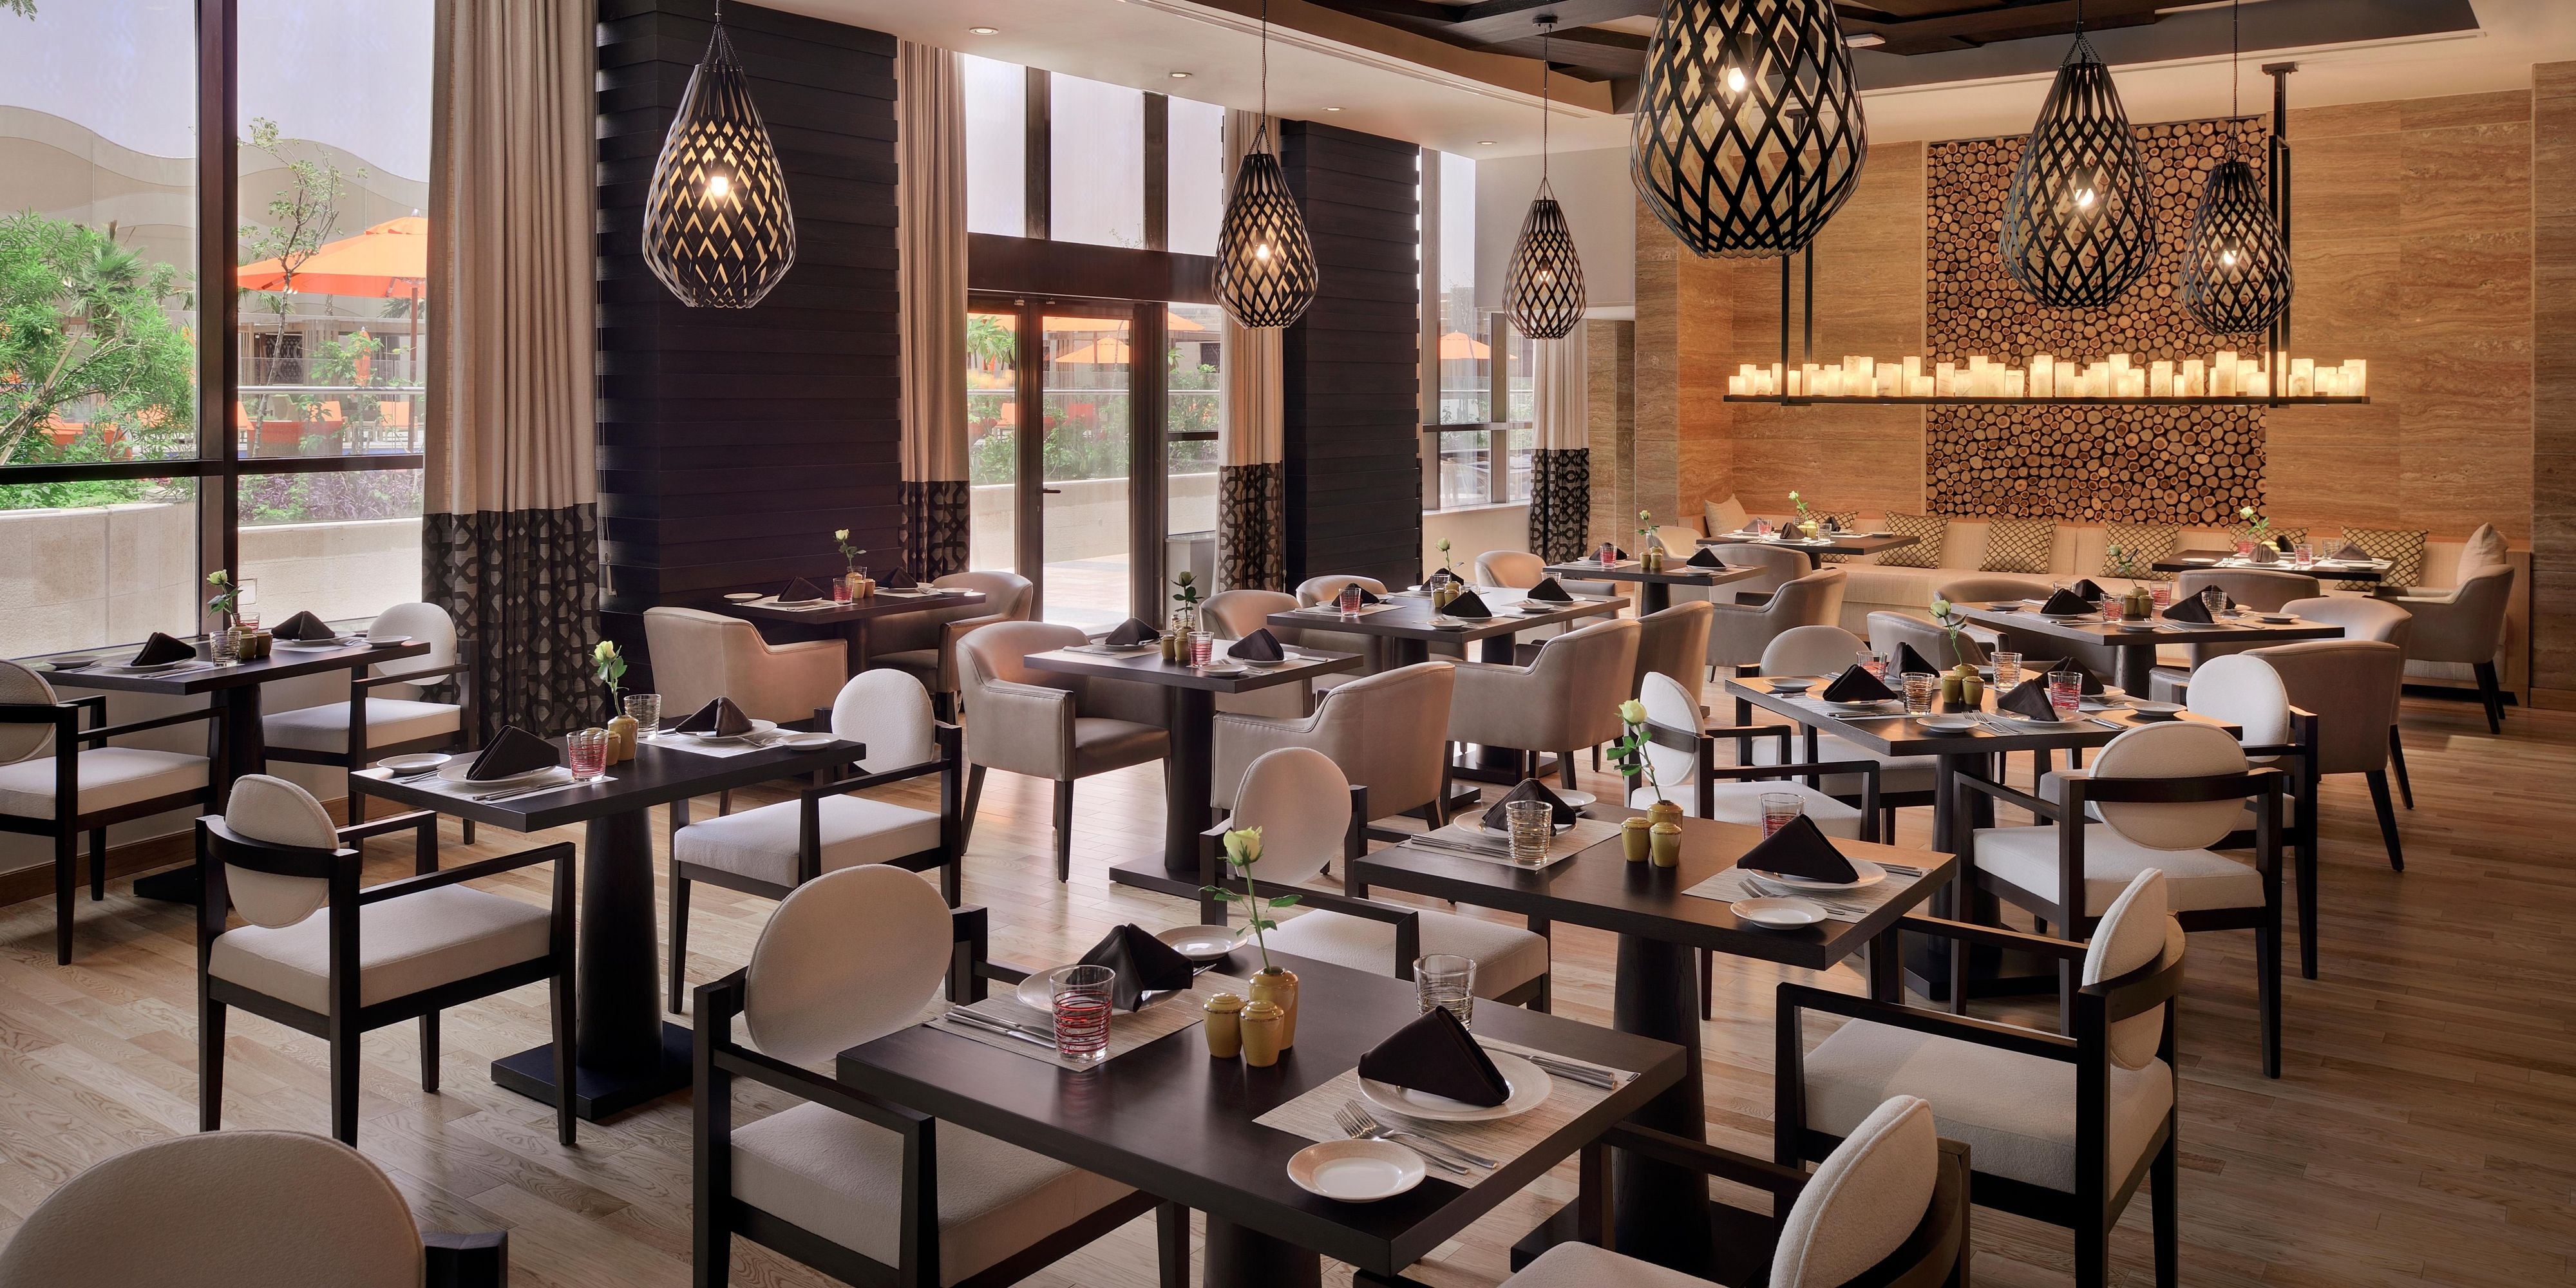 Naya Lebanese Restaurant Seating and best dishes and mixed grill